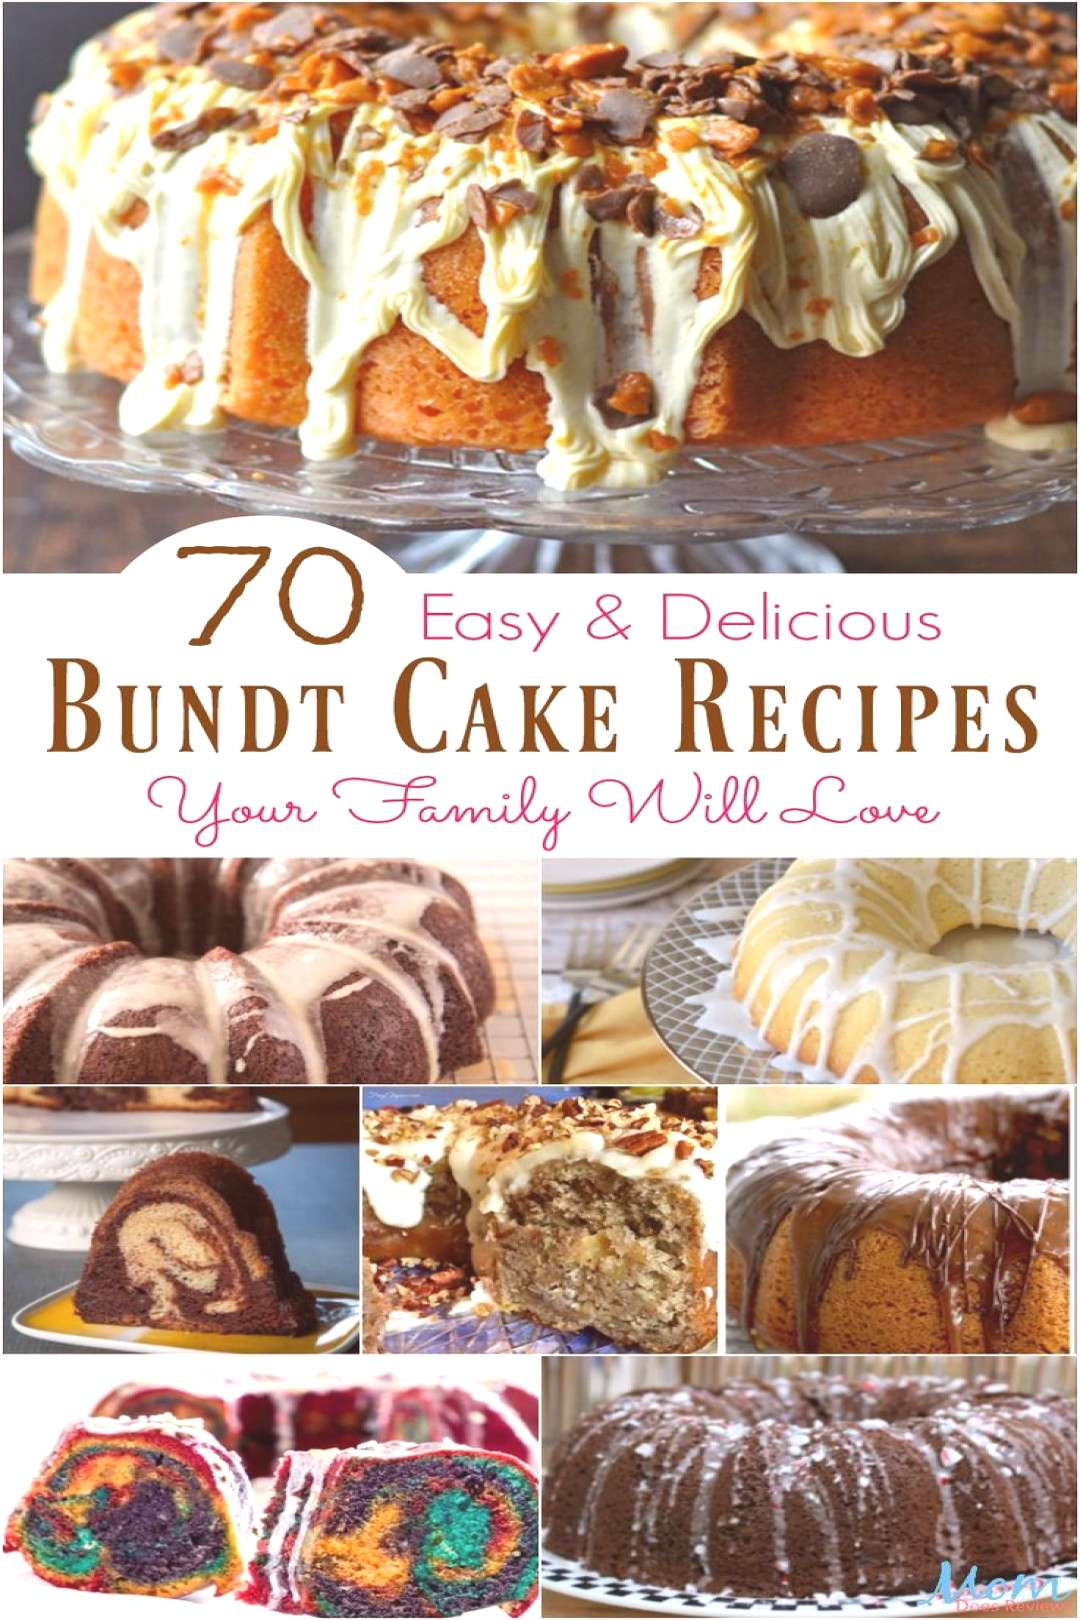 70 Easy amp Delicious Bundt Cake Recipes Your Family Will Love 70 Easy amp Delicious Bundt Cake Recipes